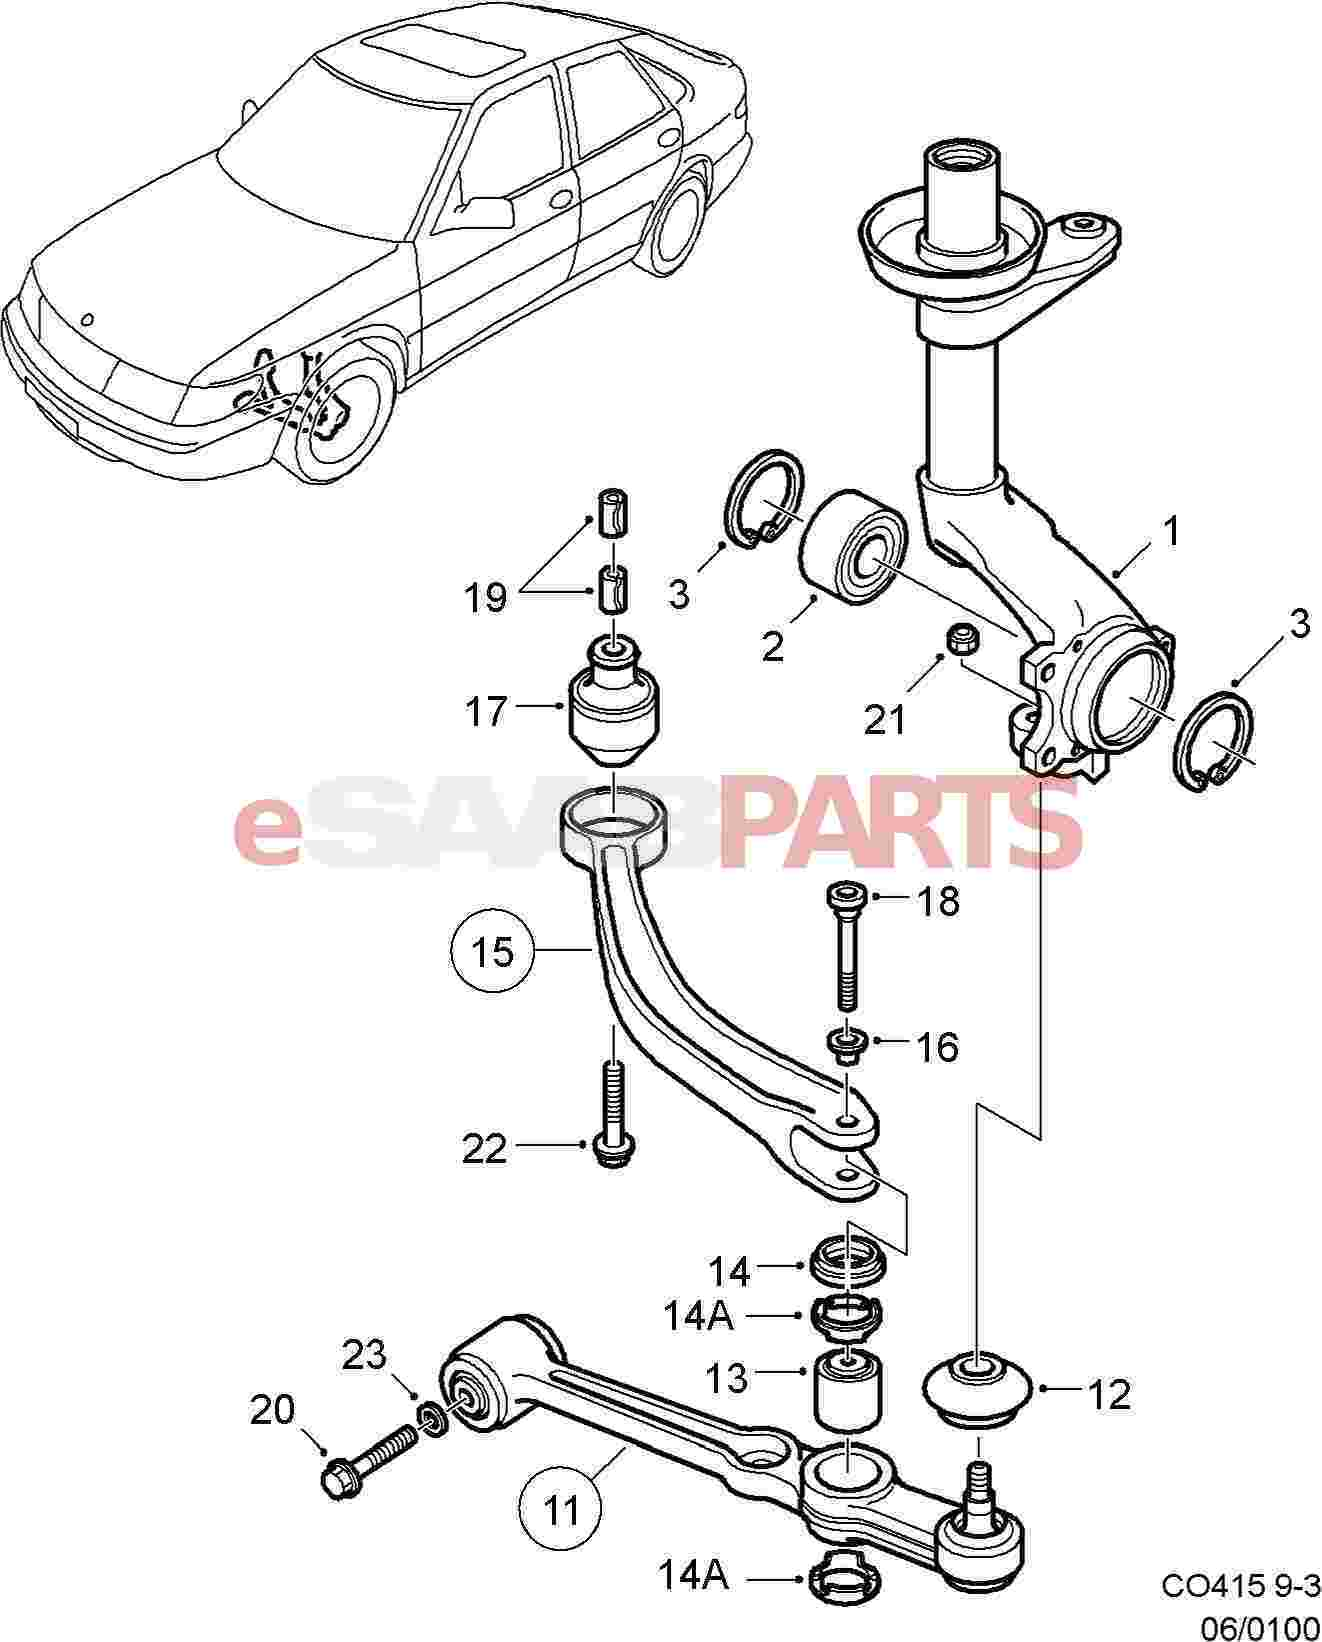 Saab 900 Ke Parts Diagram • Wiring Diagram For Free